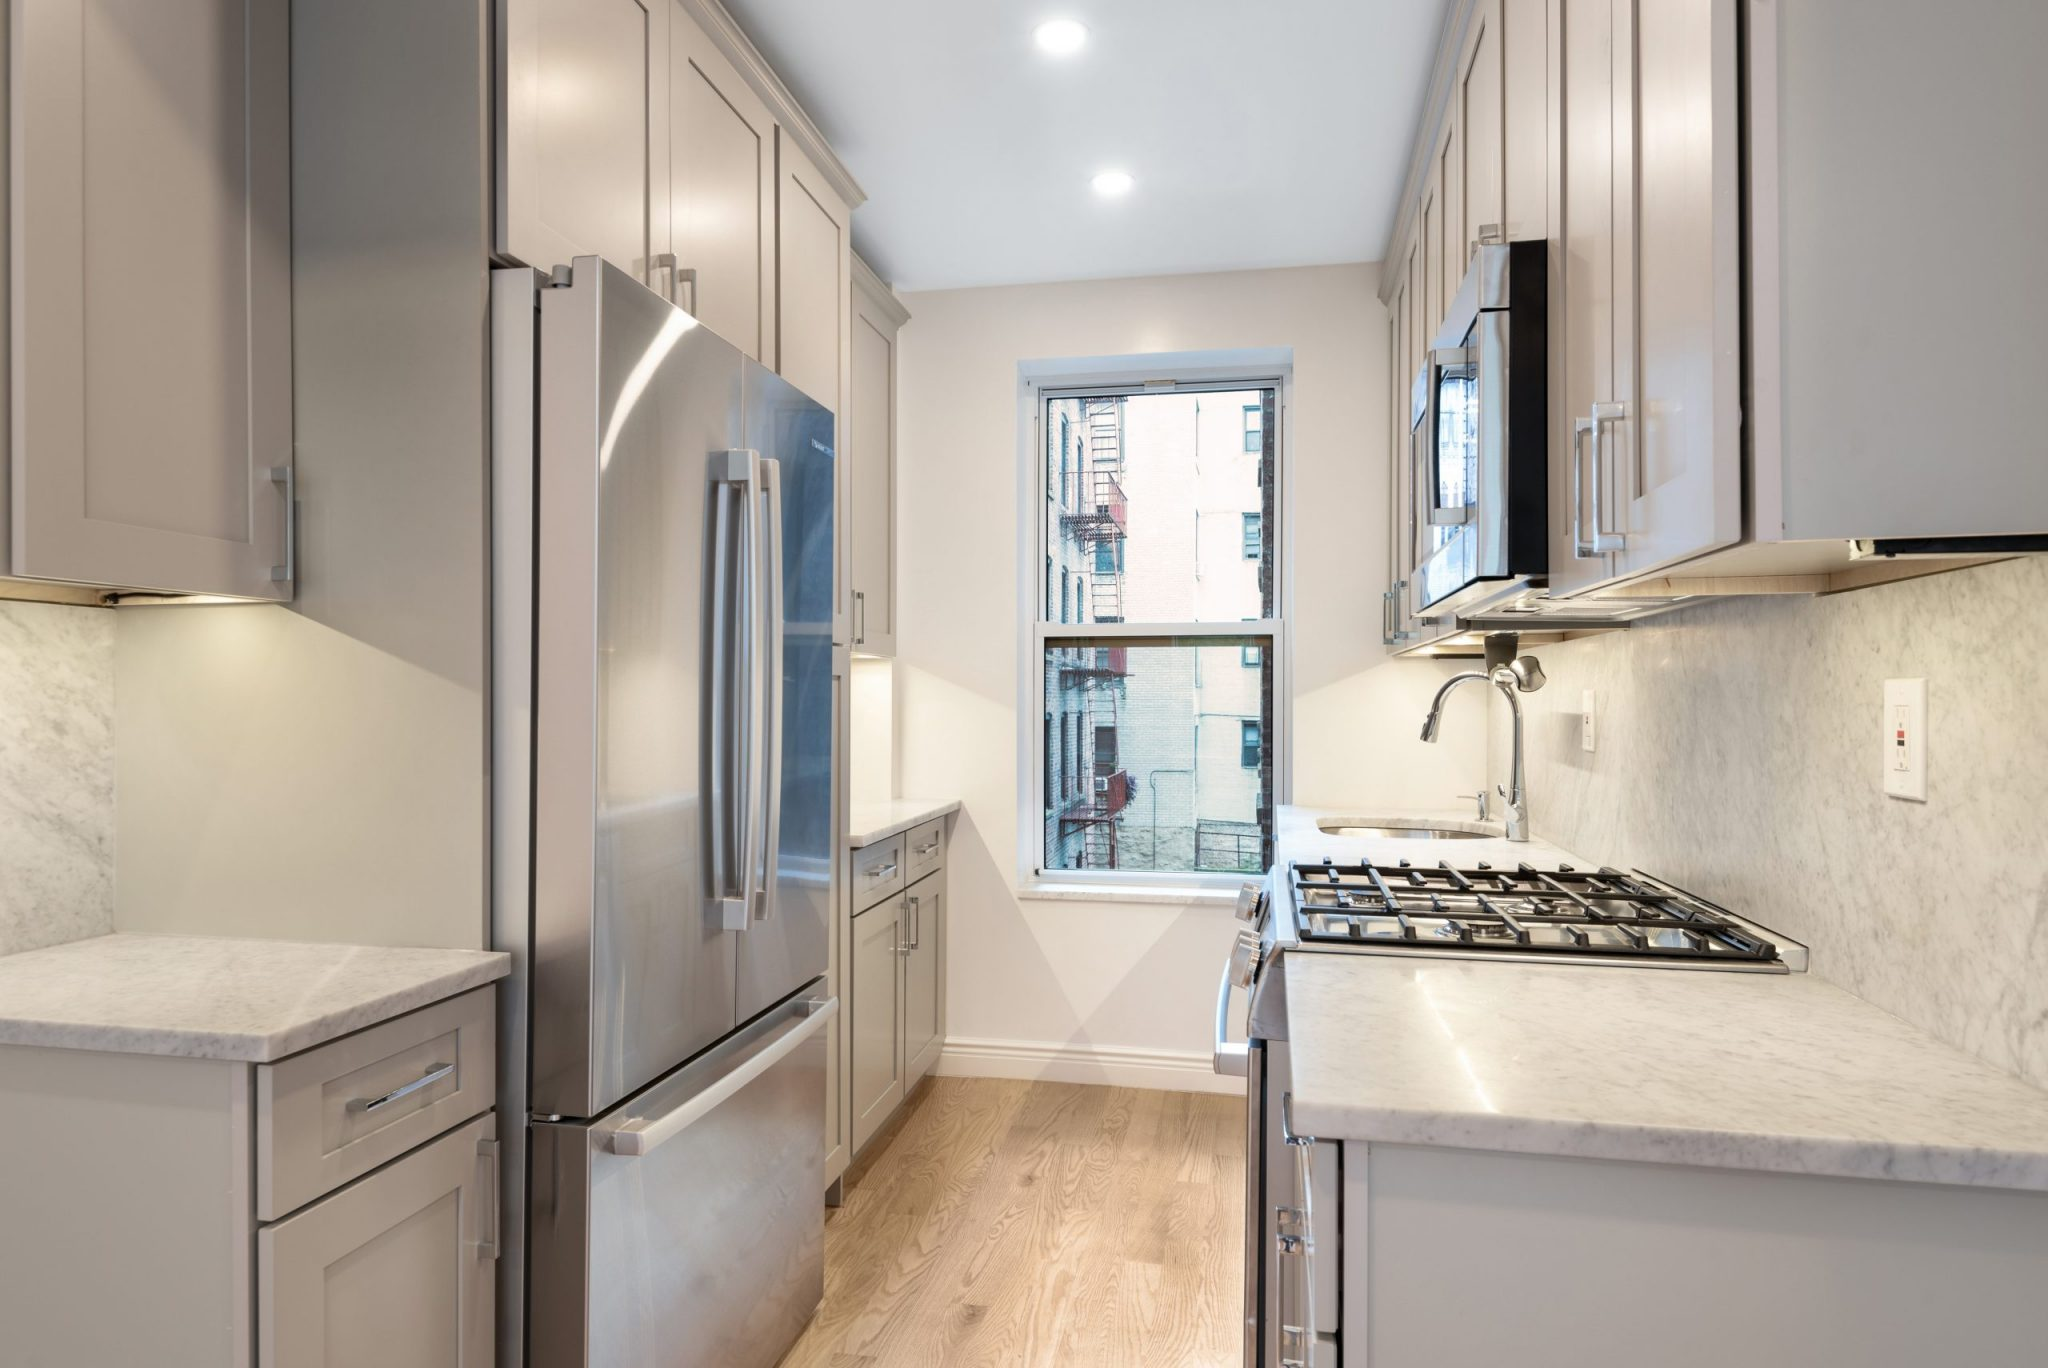 SOLD – 624 West 207th St Apt. 21 New York, NY 10034